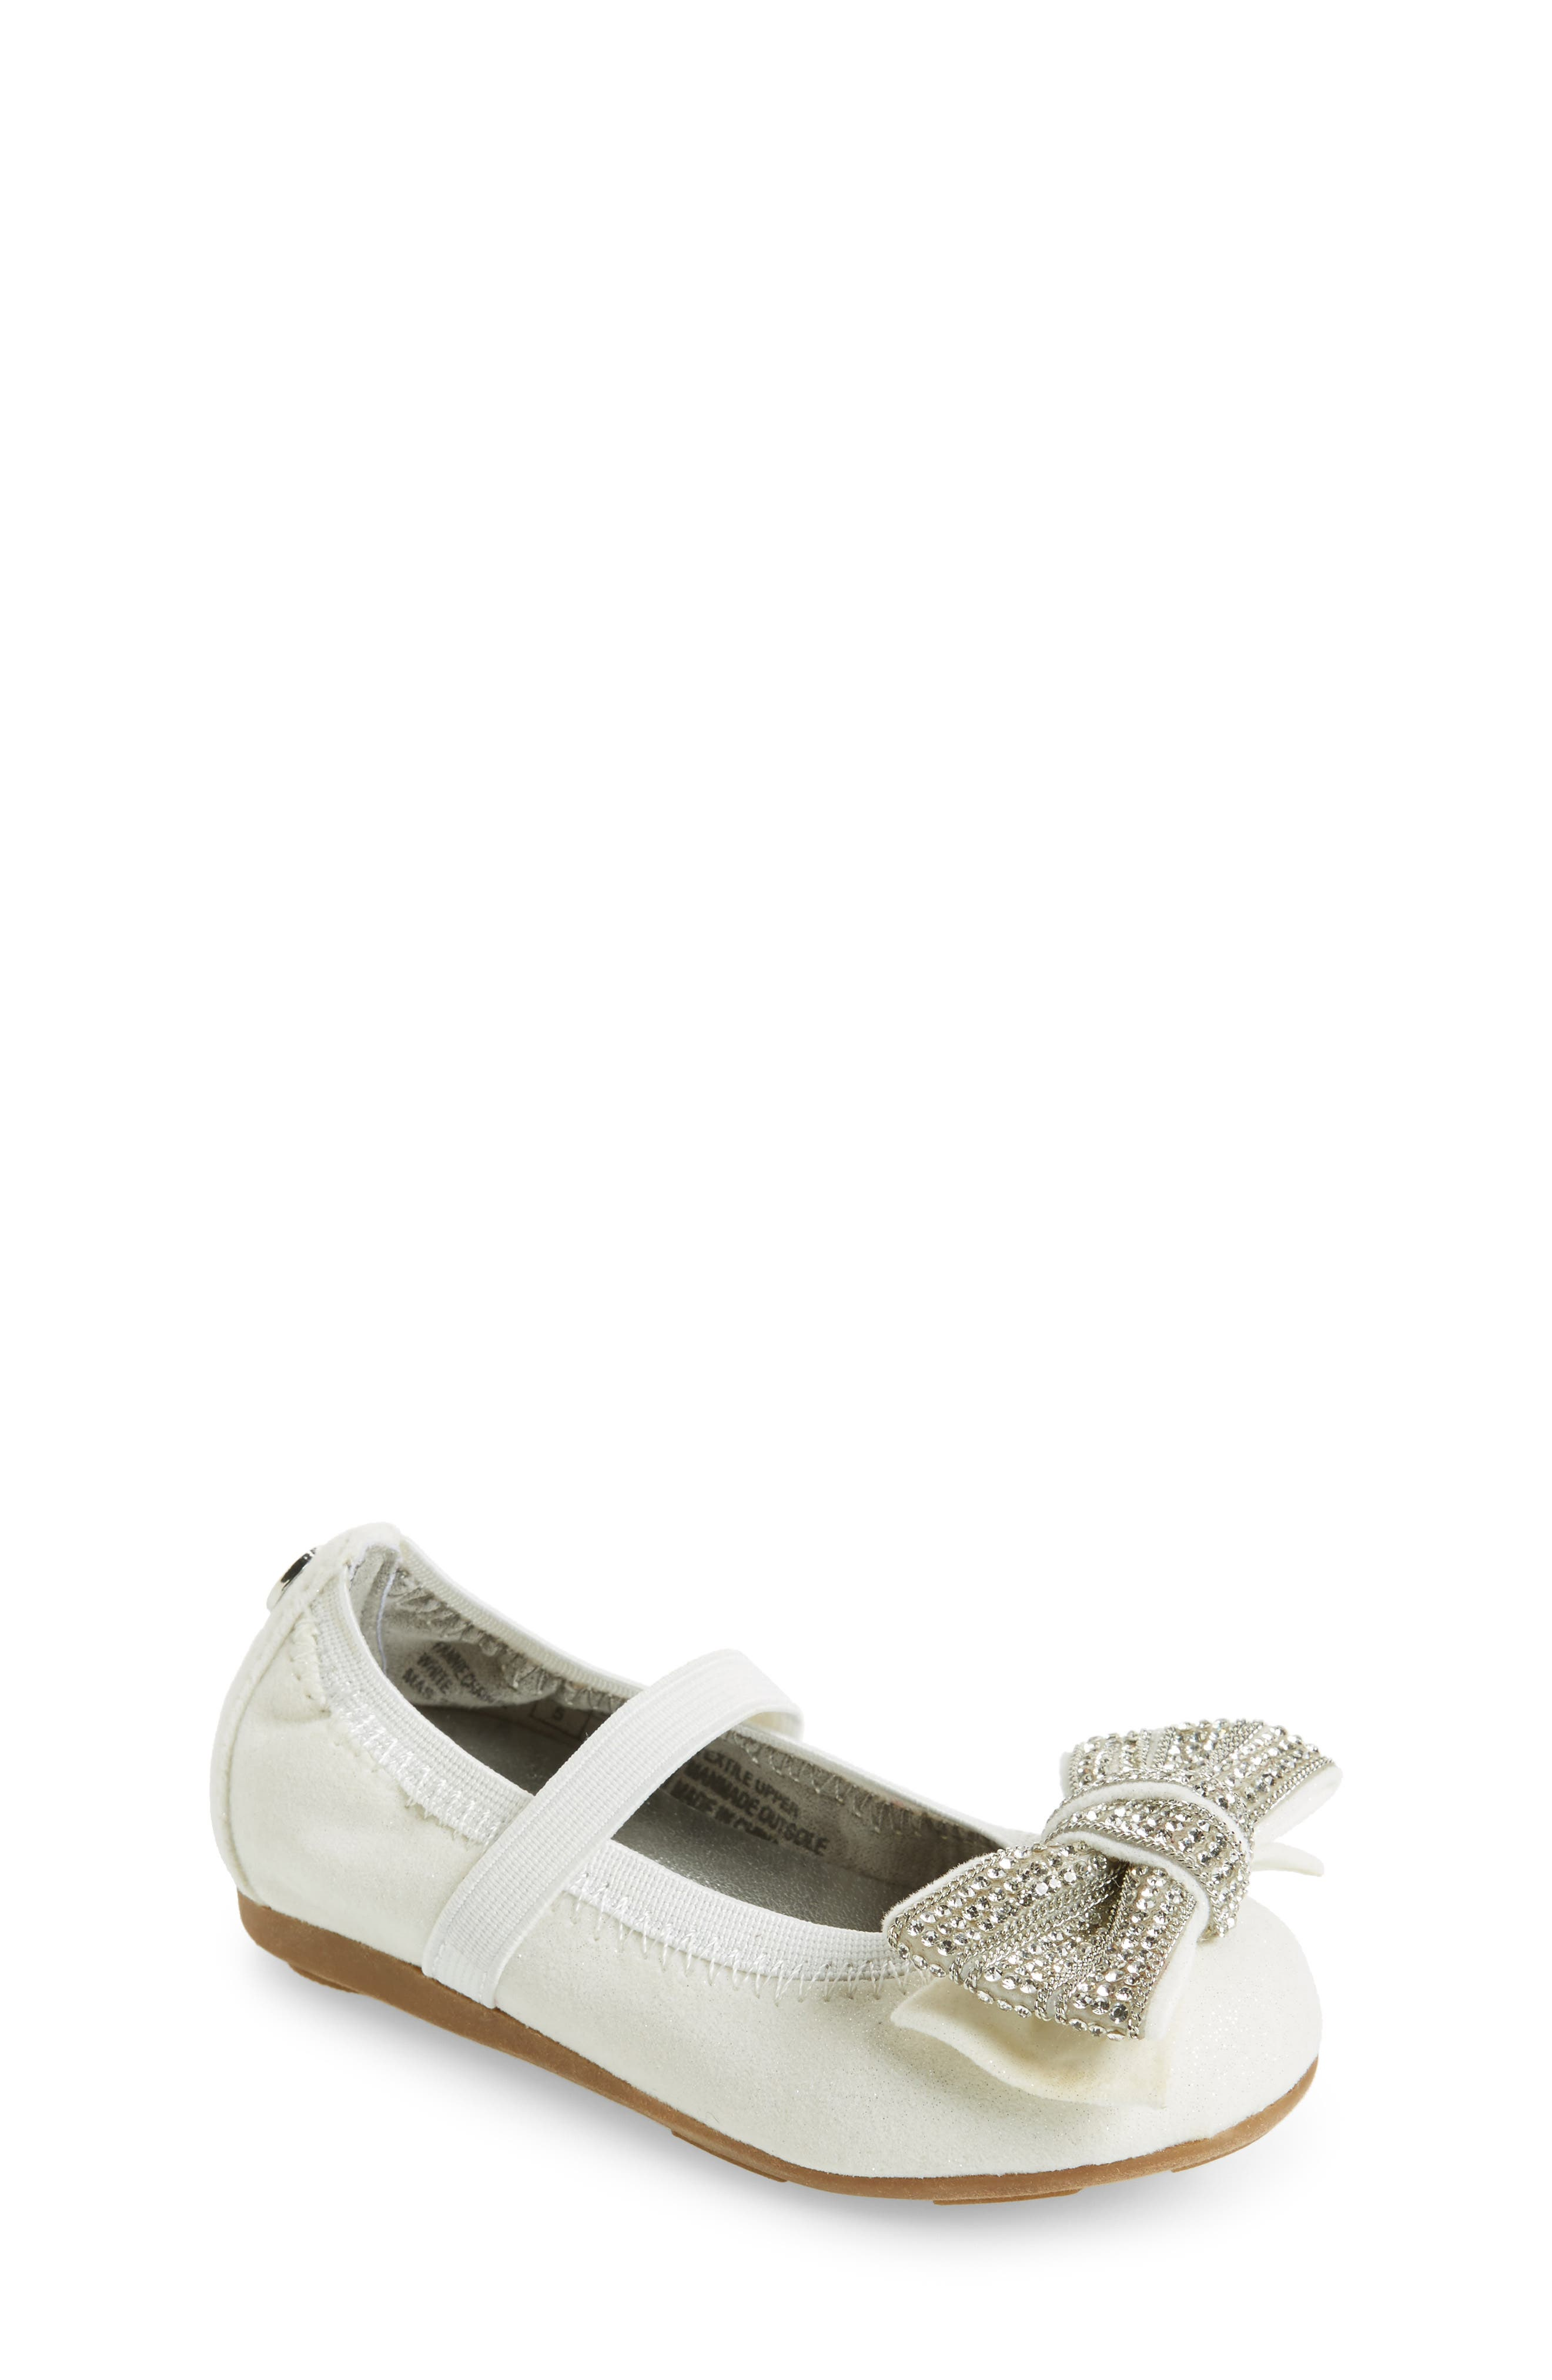 Fannie Embellished Bow Mary Jane Flat,                             Main thumbnail 1, color,                             White